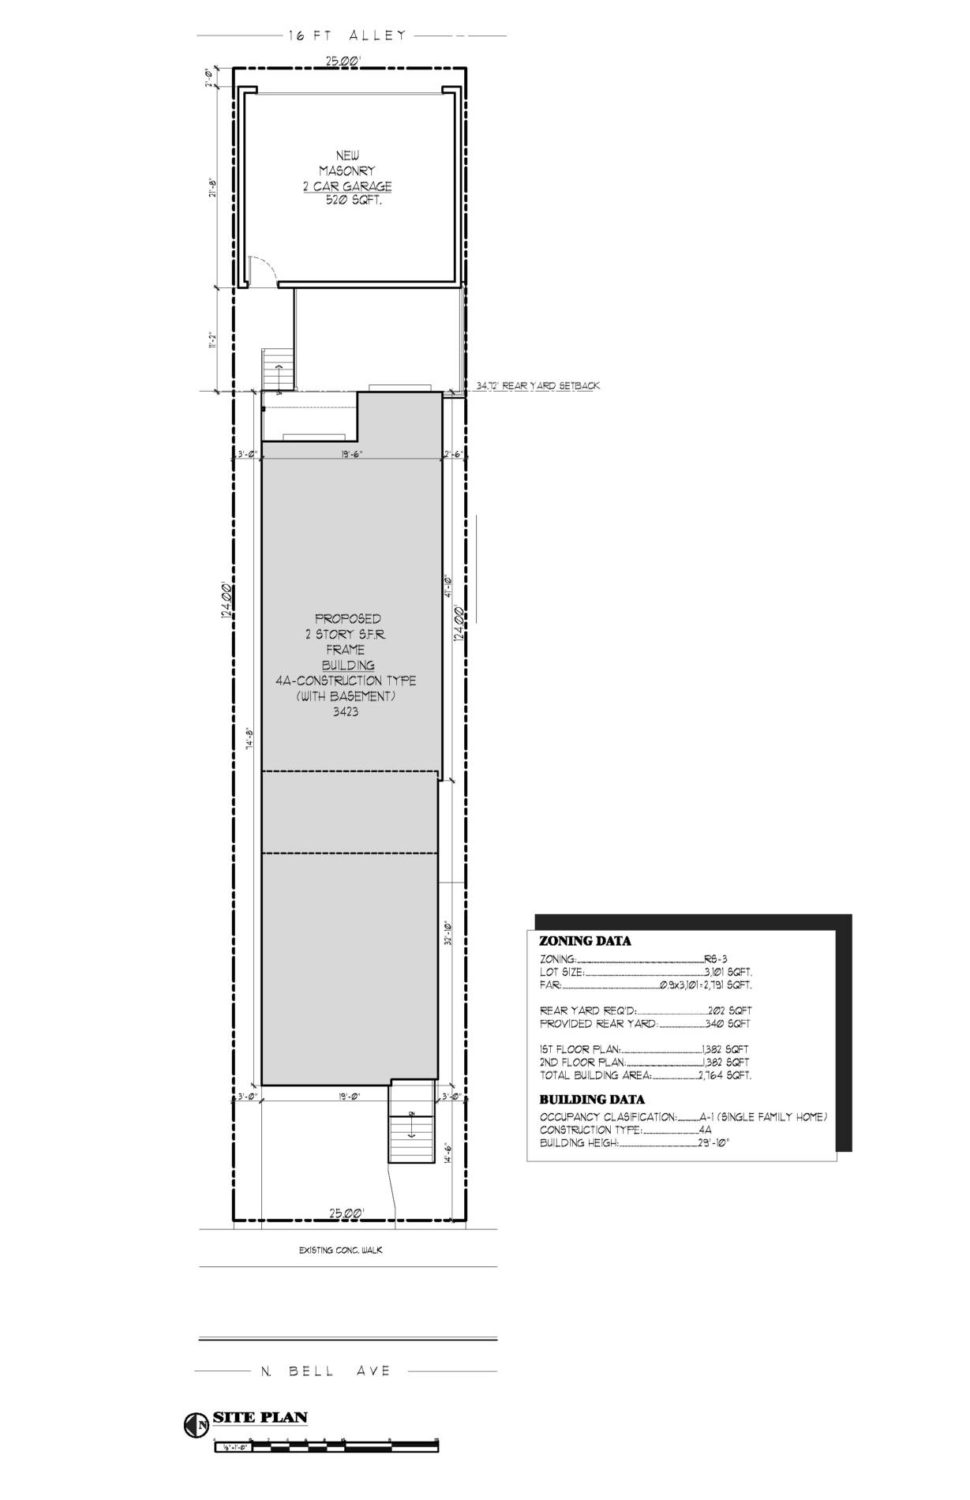 3423 N Bell Ave Site Plan